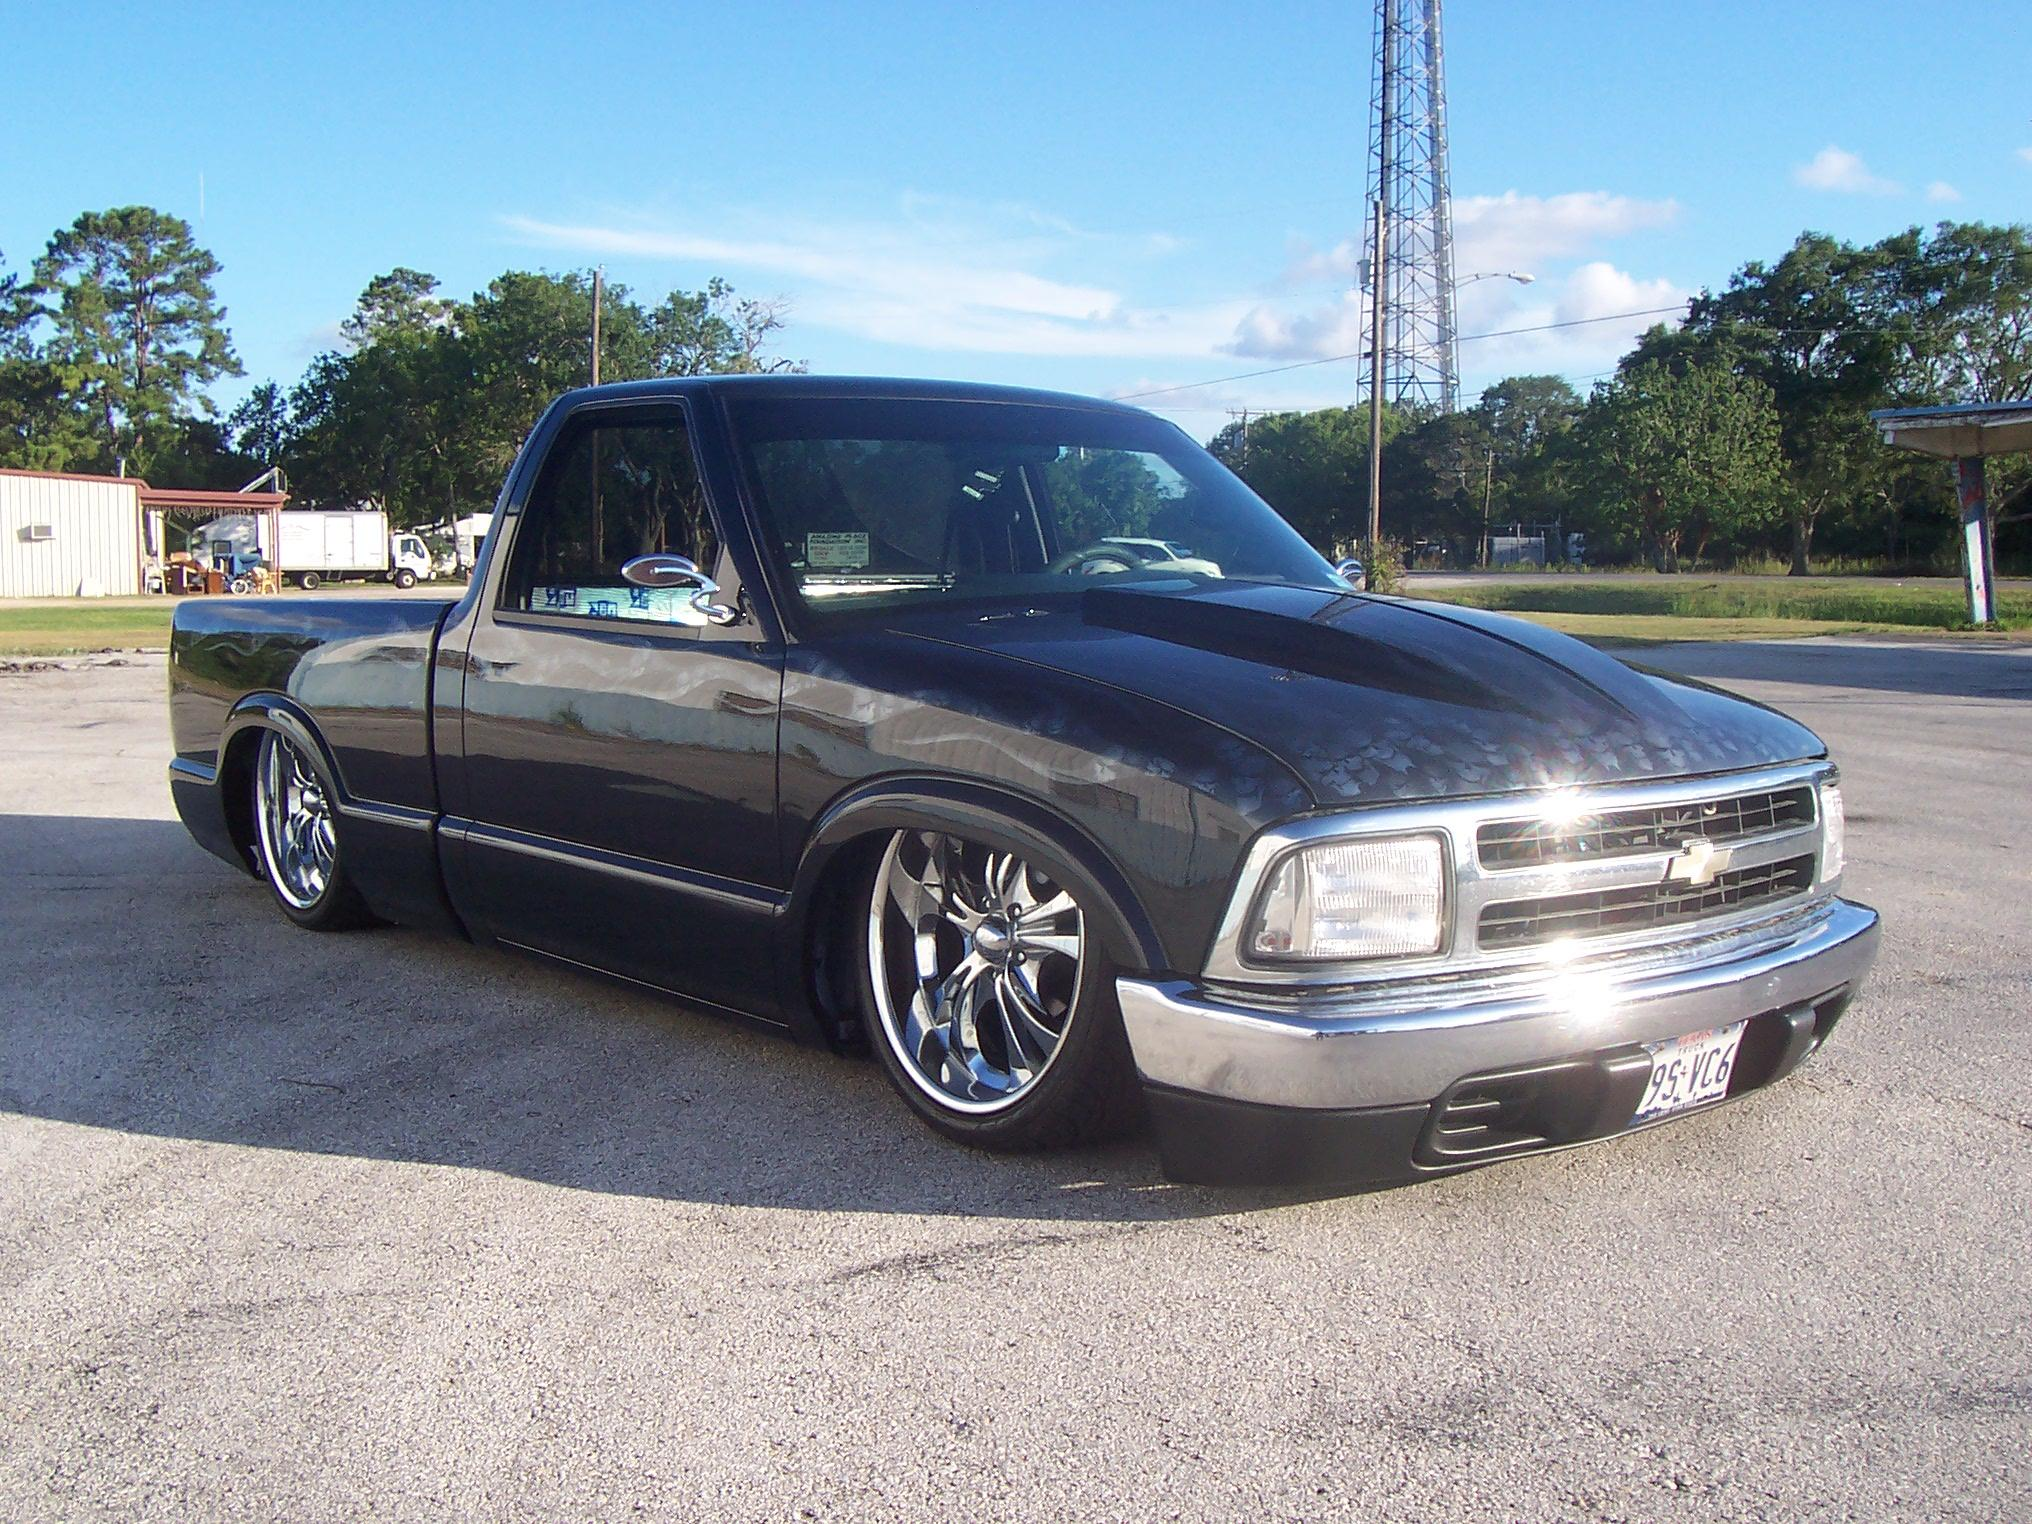 1997 Chevrolet S10 Regular Cab